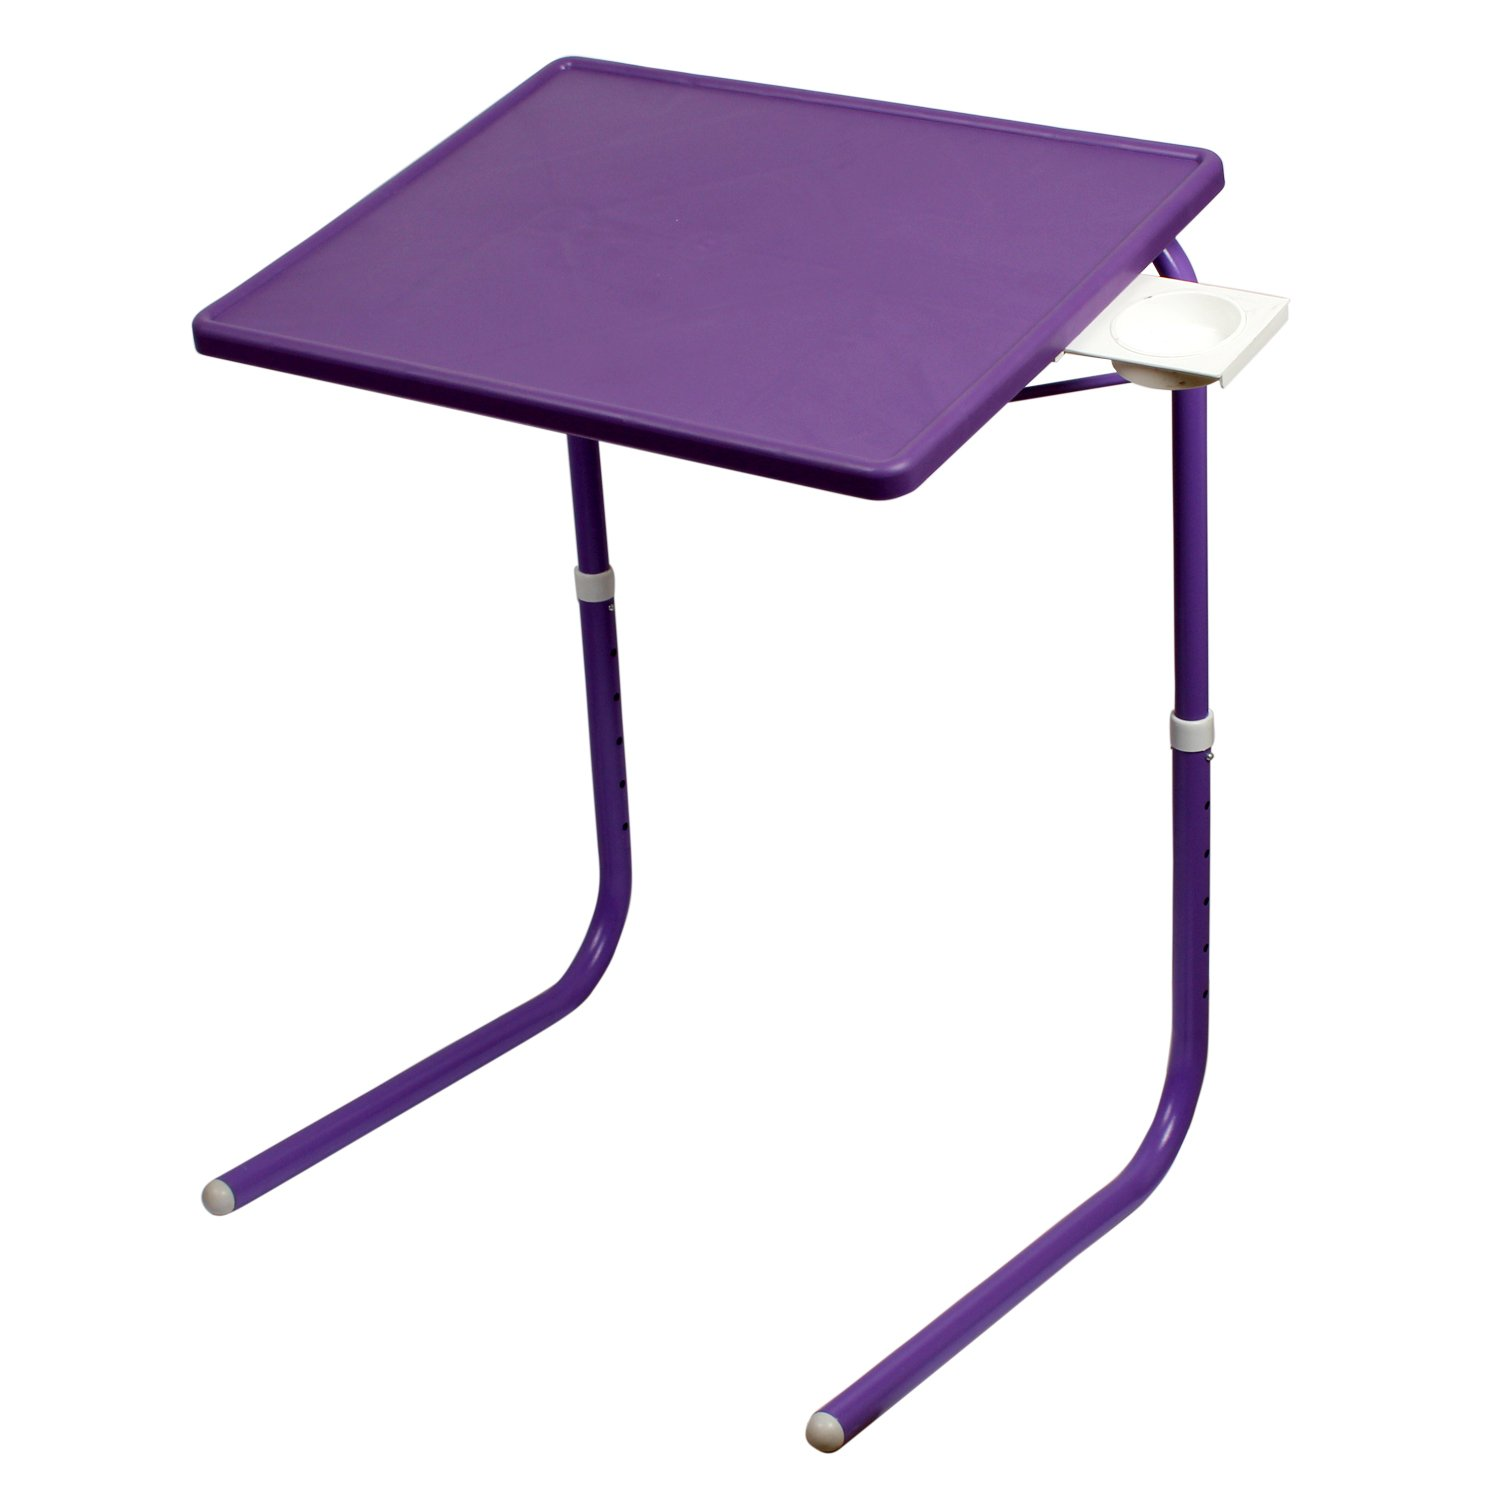 Multi Table Table Mate Multi Purpose Table Rm_0013: Amazon.in: Electronics